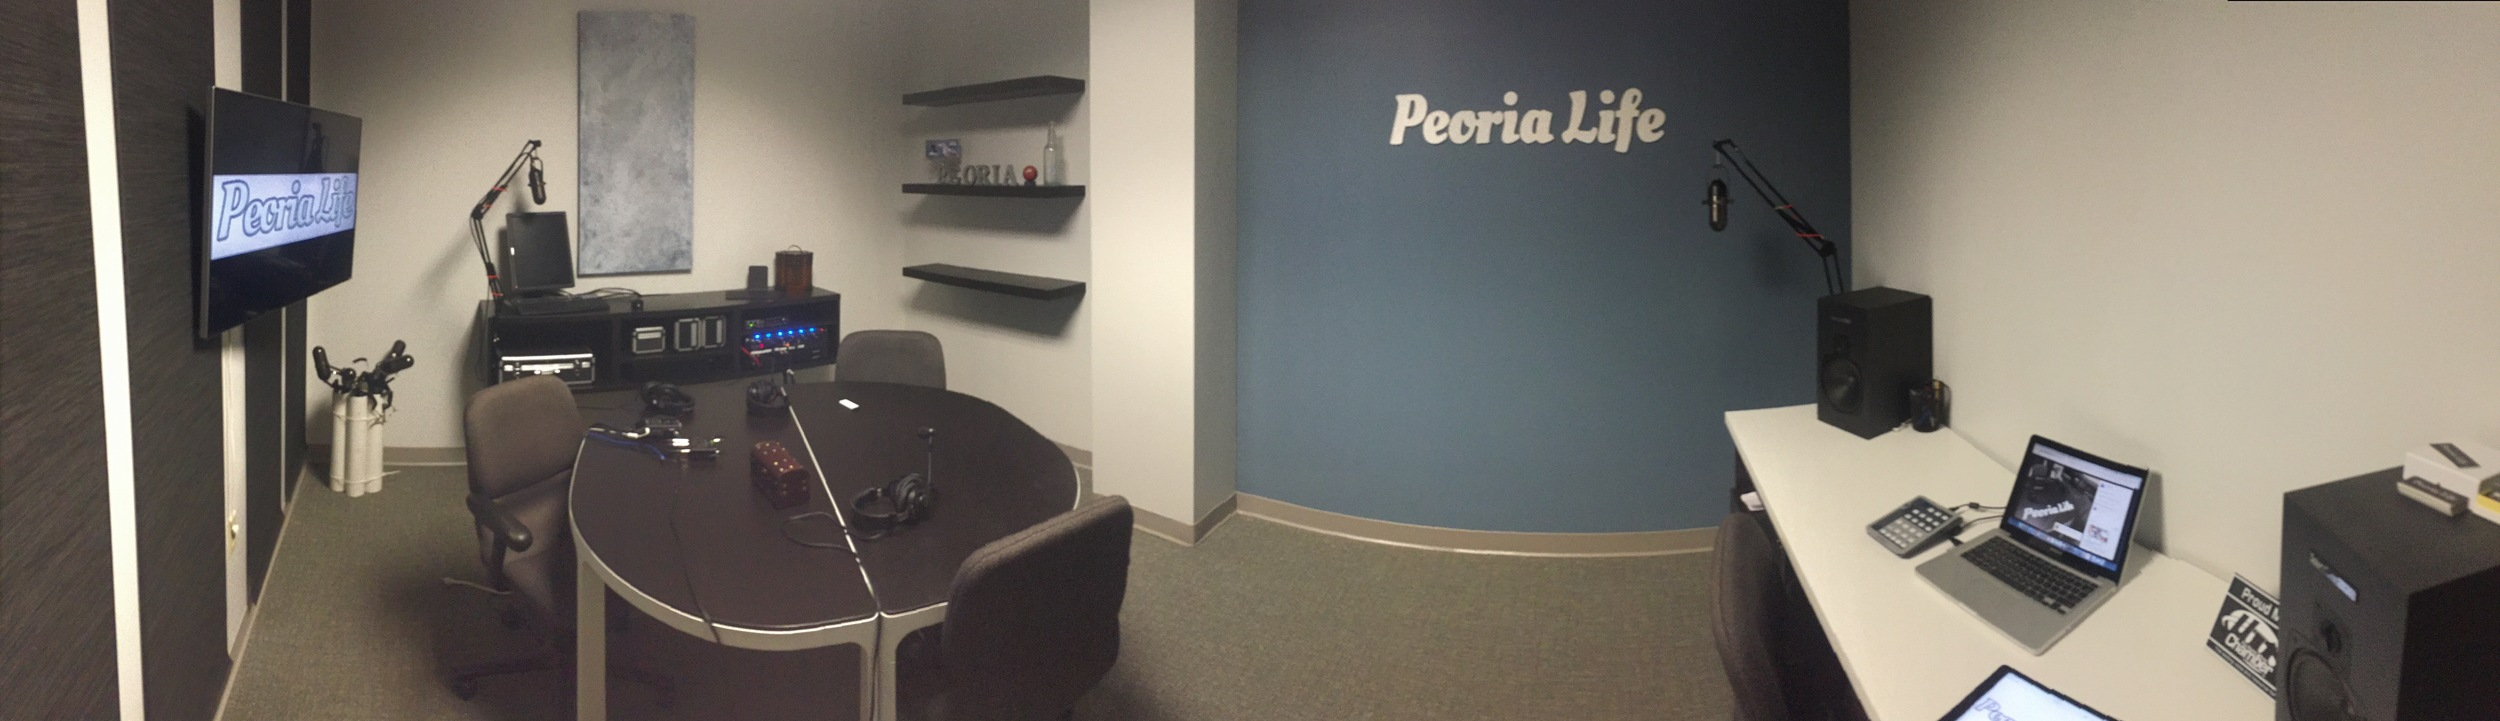 Peoria Life is a product of Widecast Inc.